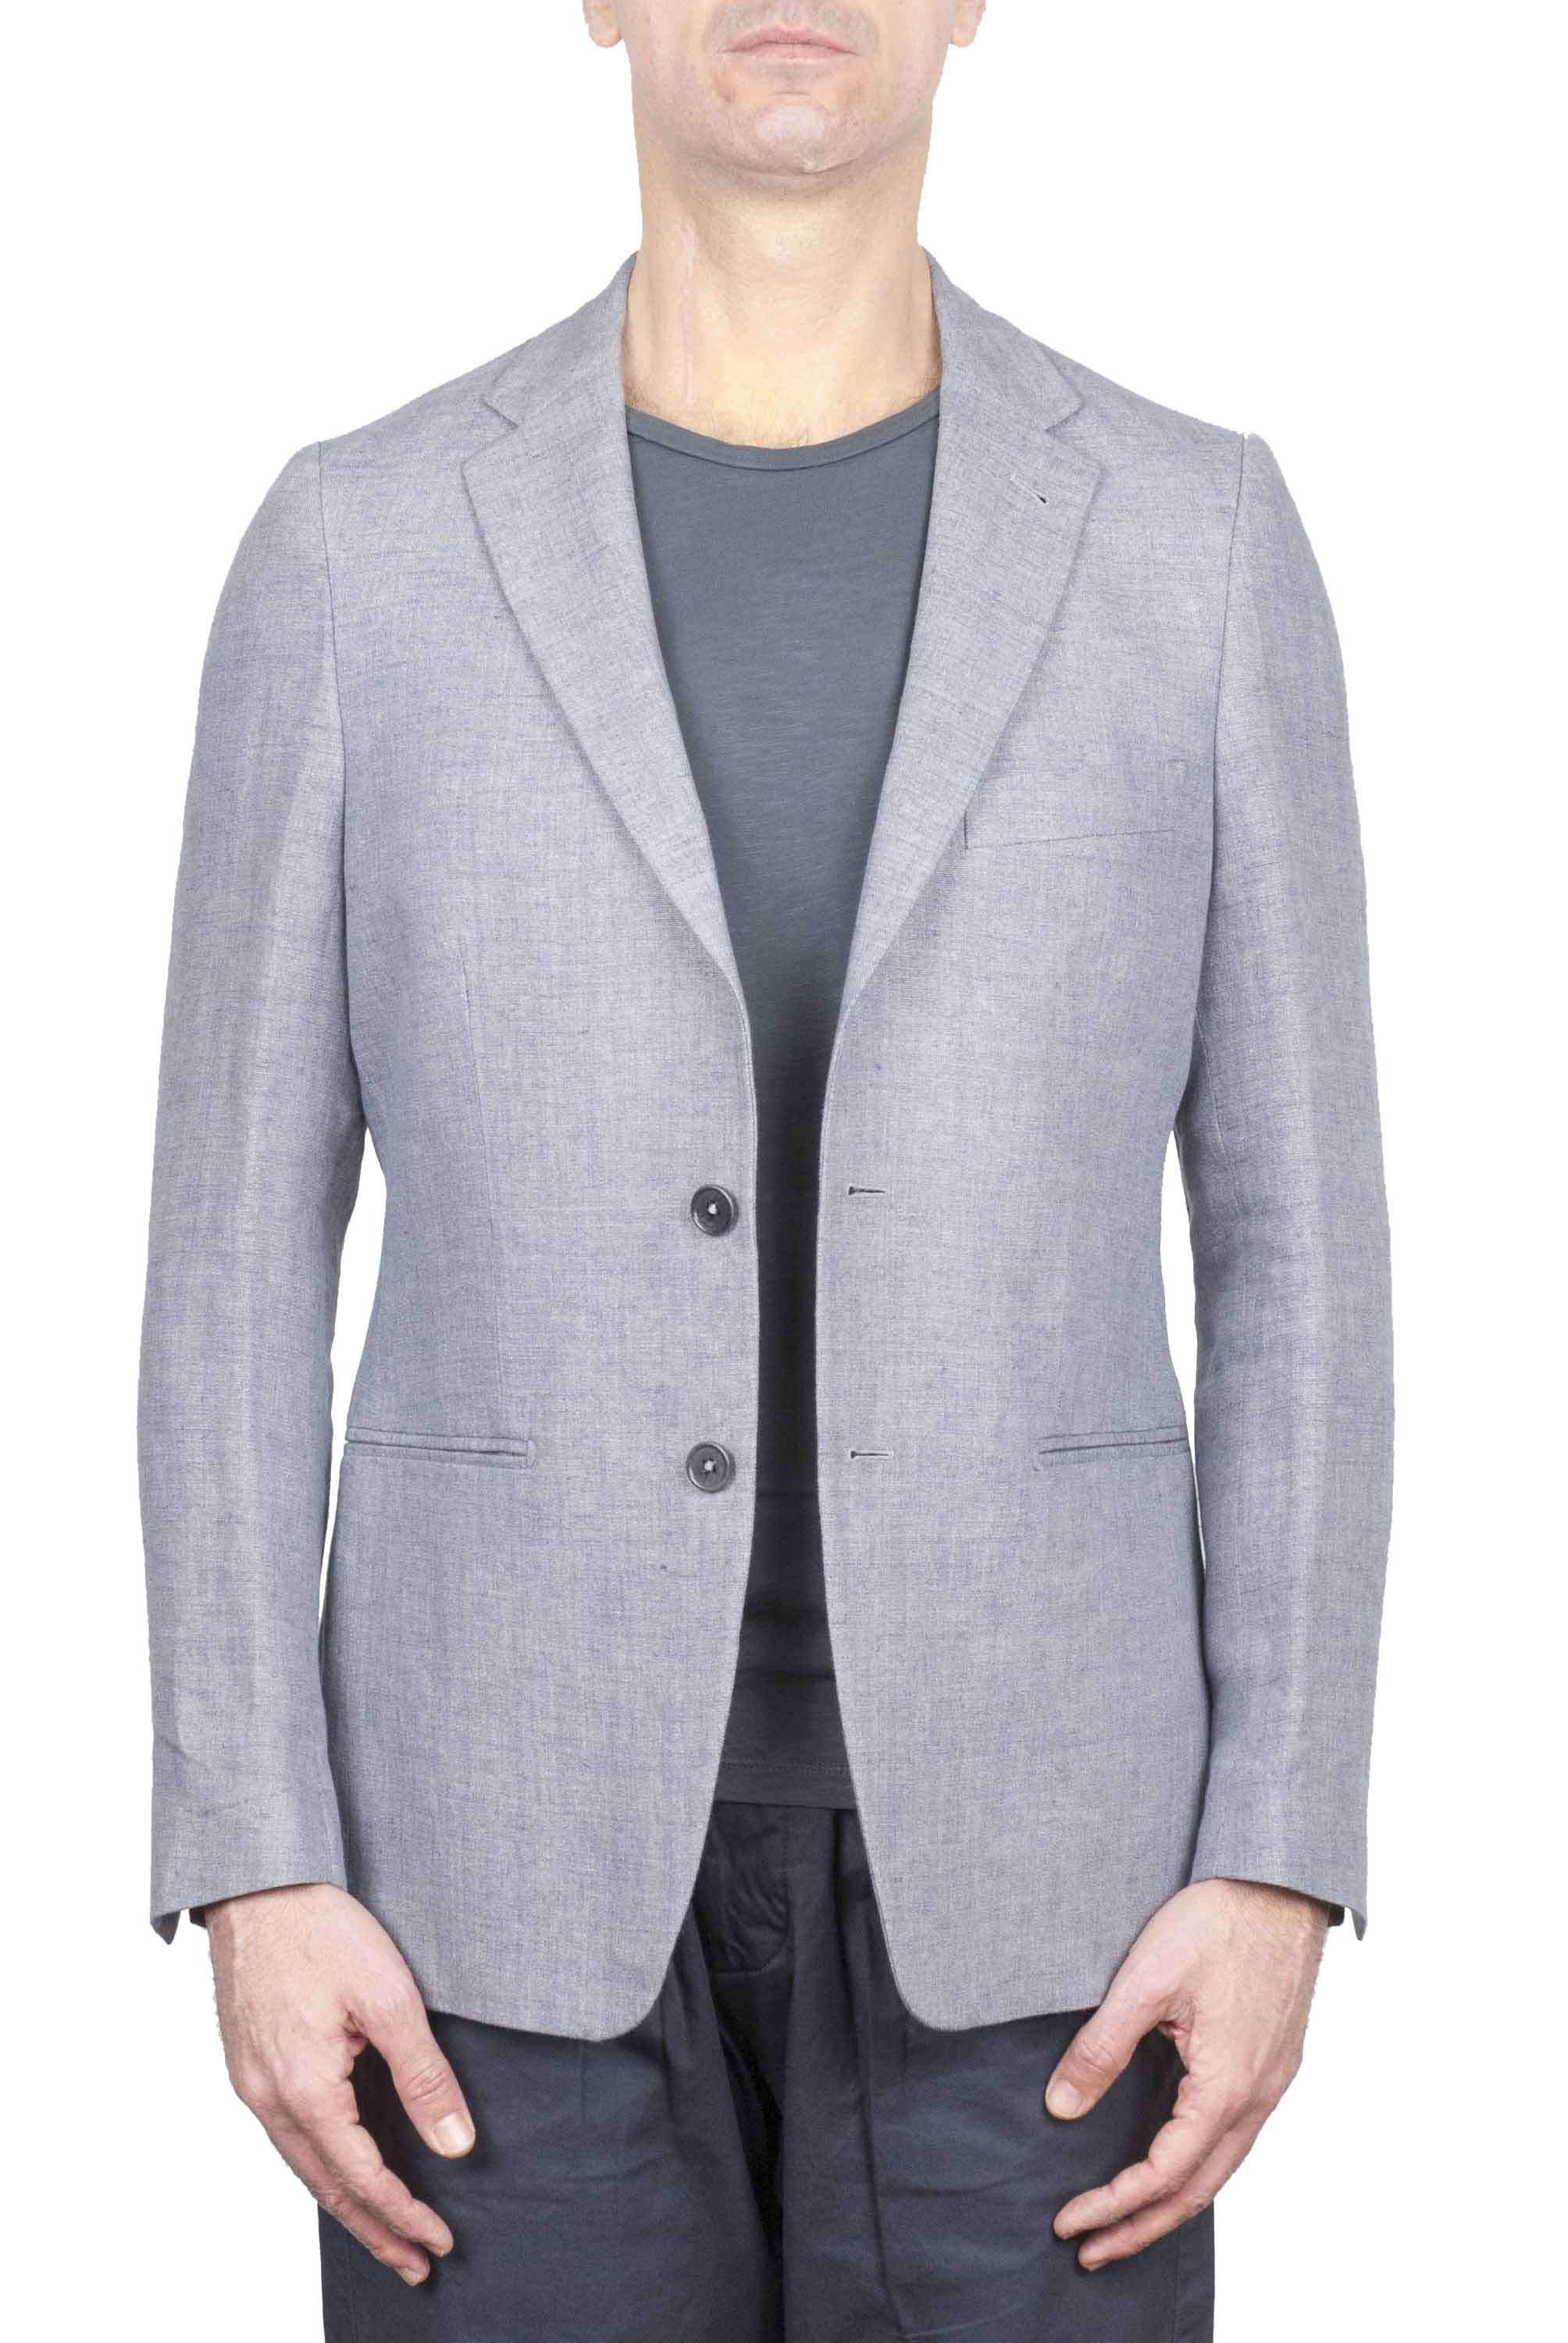 SBU 01172 Single breasted unstructured blazer 01